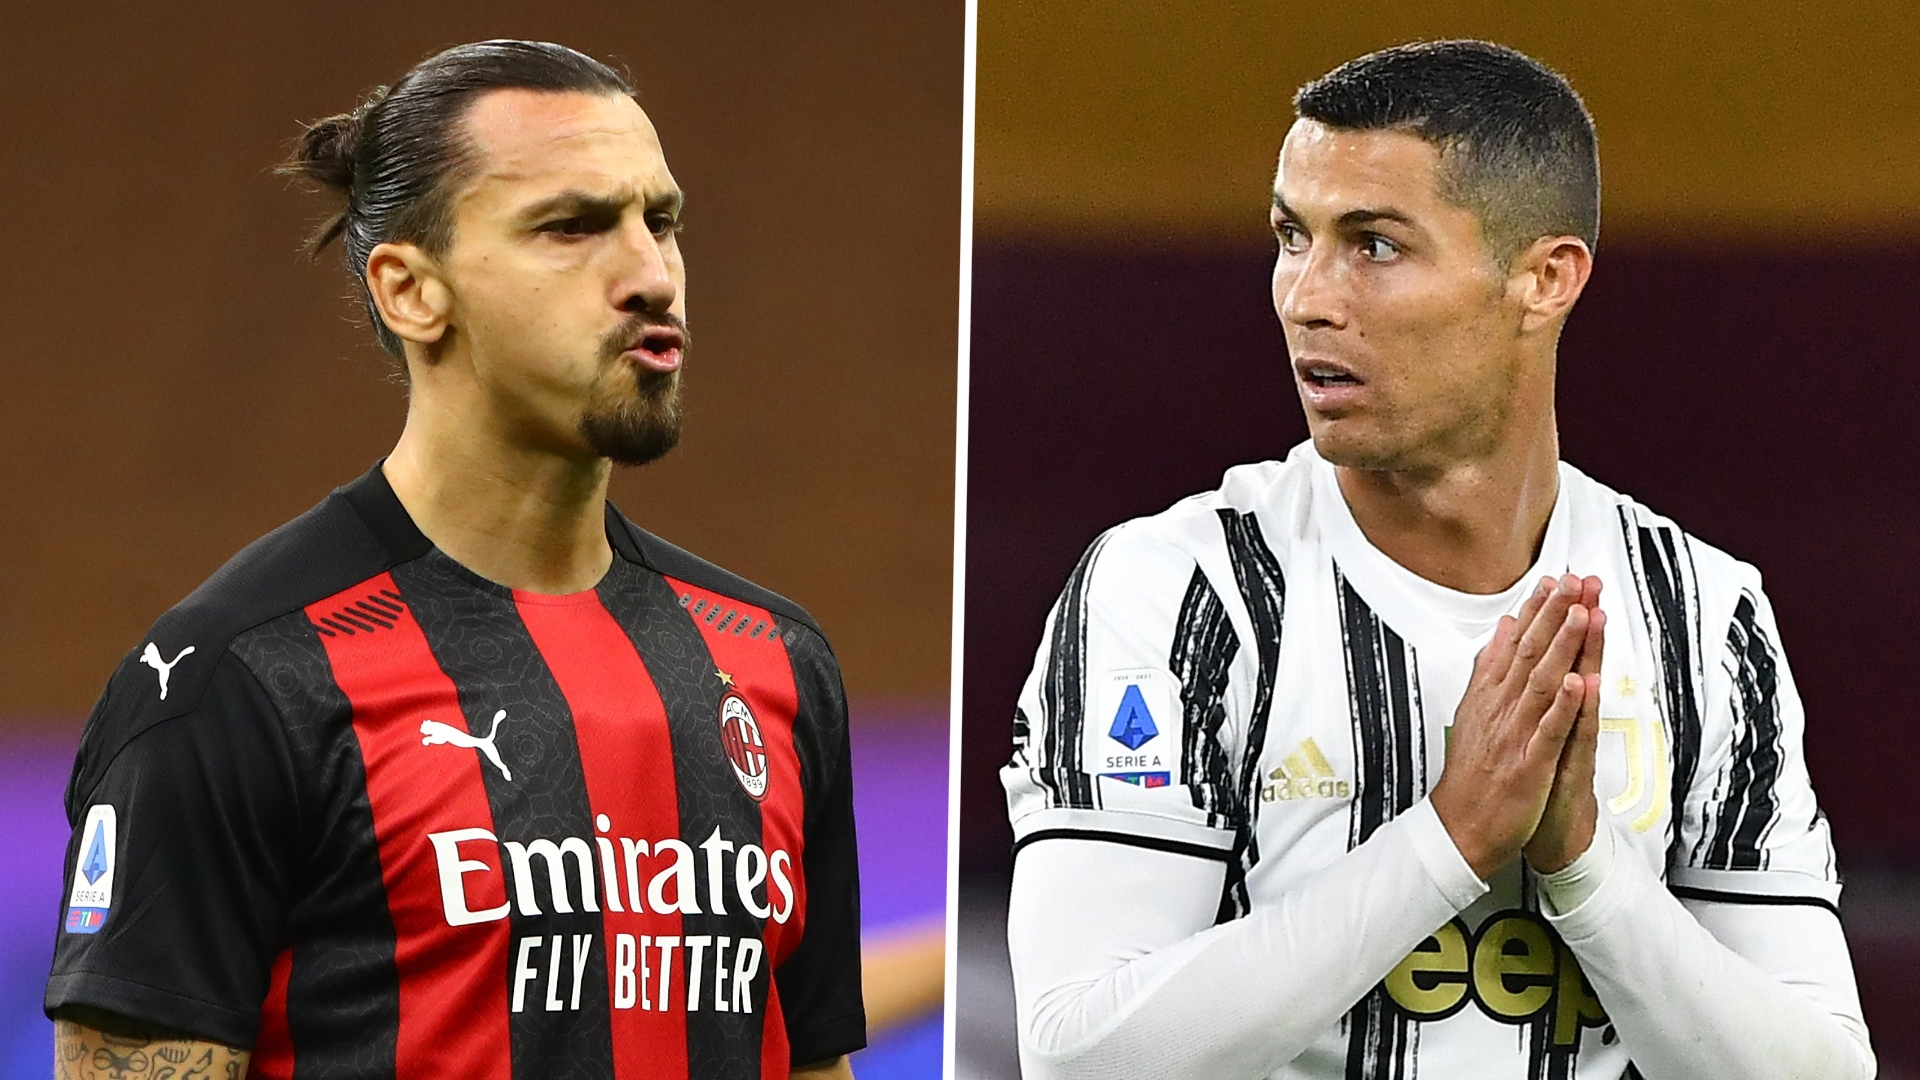 Ronaldo likened to Ibrahimovic and backed to play beyond 40 by former Real Madrid fitness coach